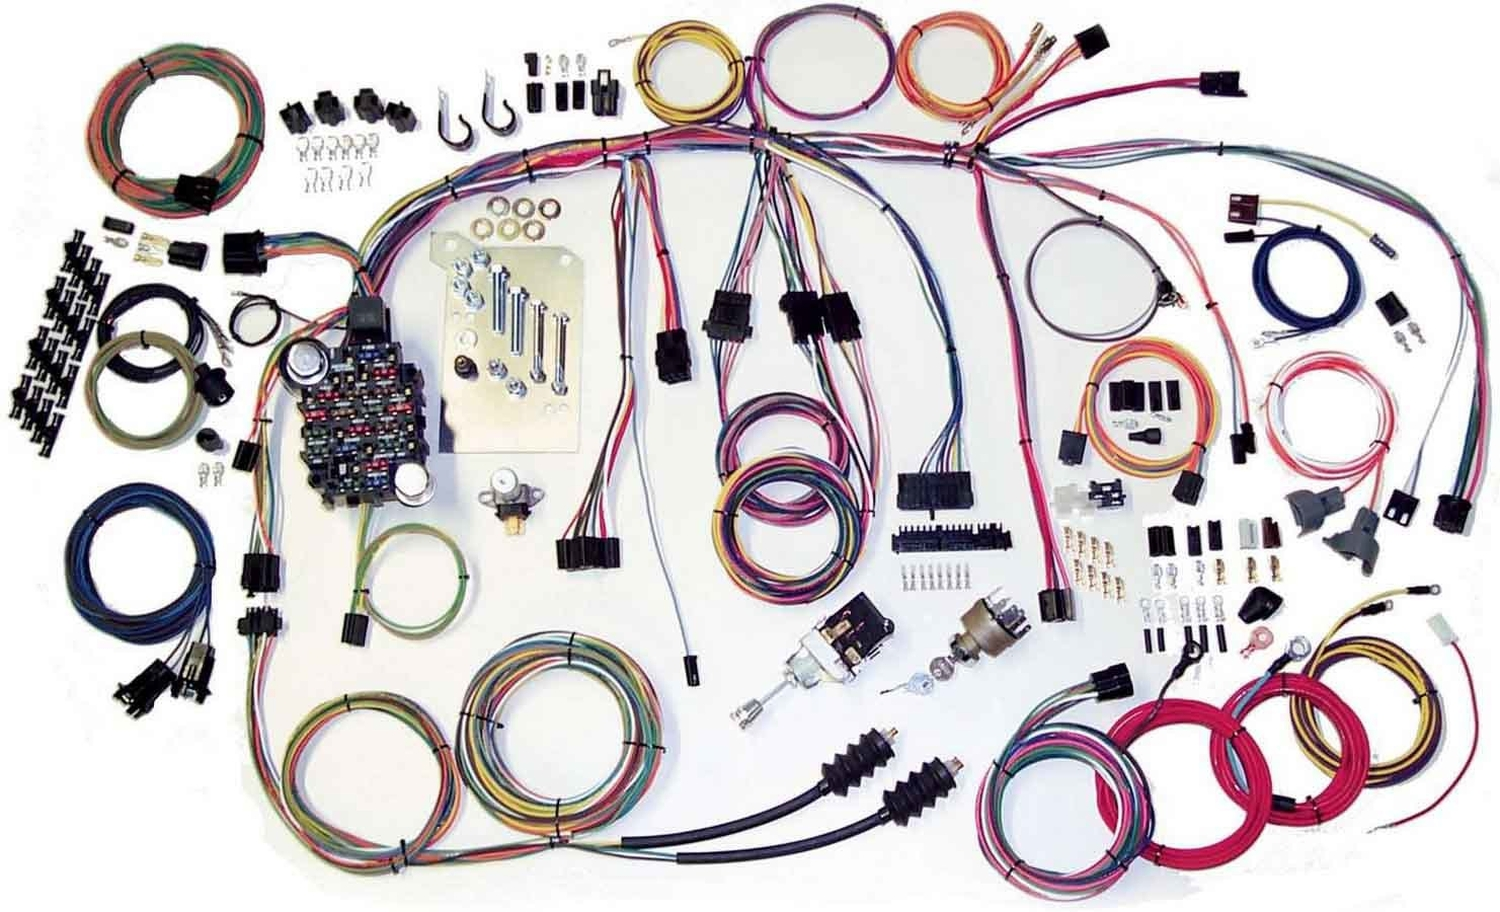 [DIAGRAM_5NL]  American Autowire 500560 Truck Wiring Harness for 60-66 Chevy for sale  online | eBay | Chevy Truck Wiring Harness Ebay |  | eBay